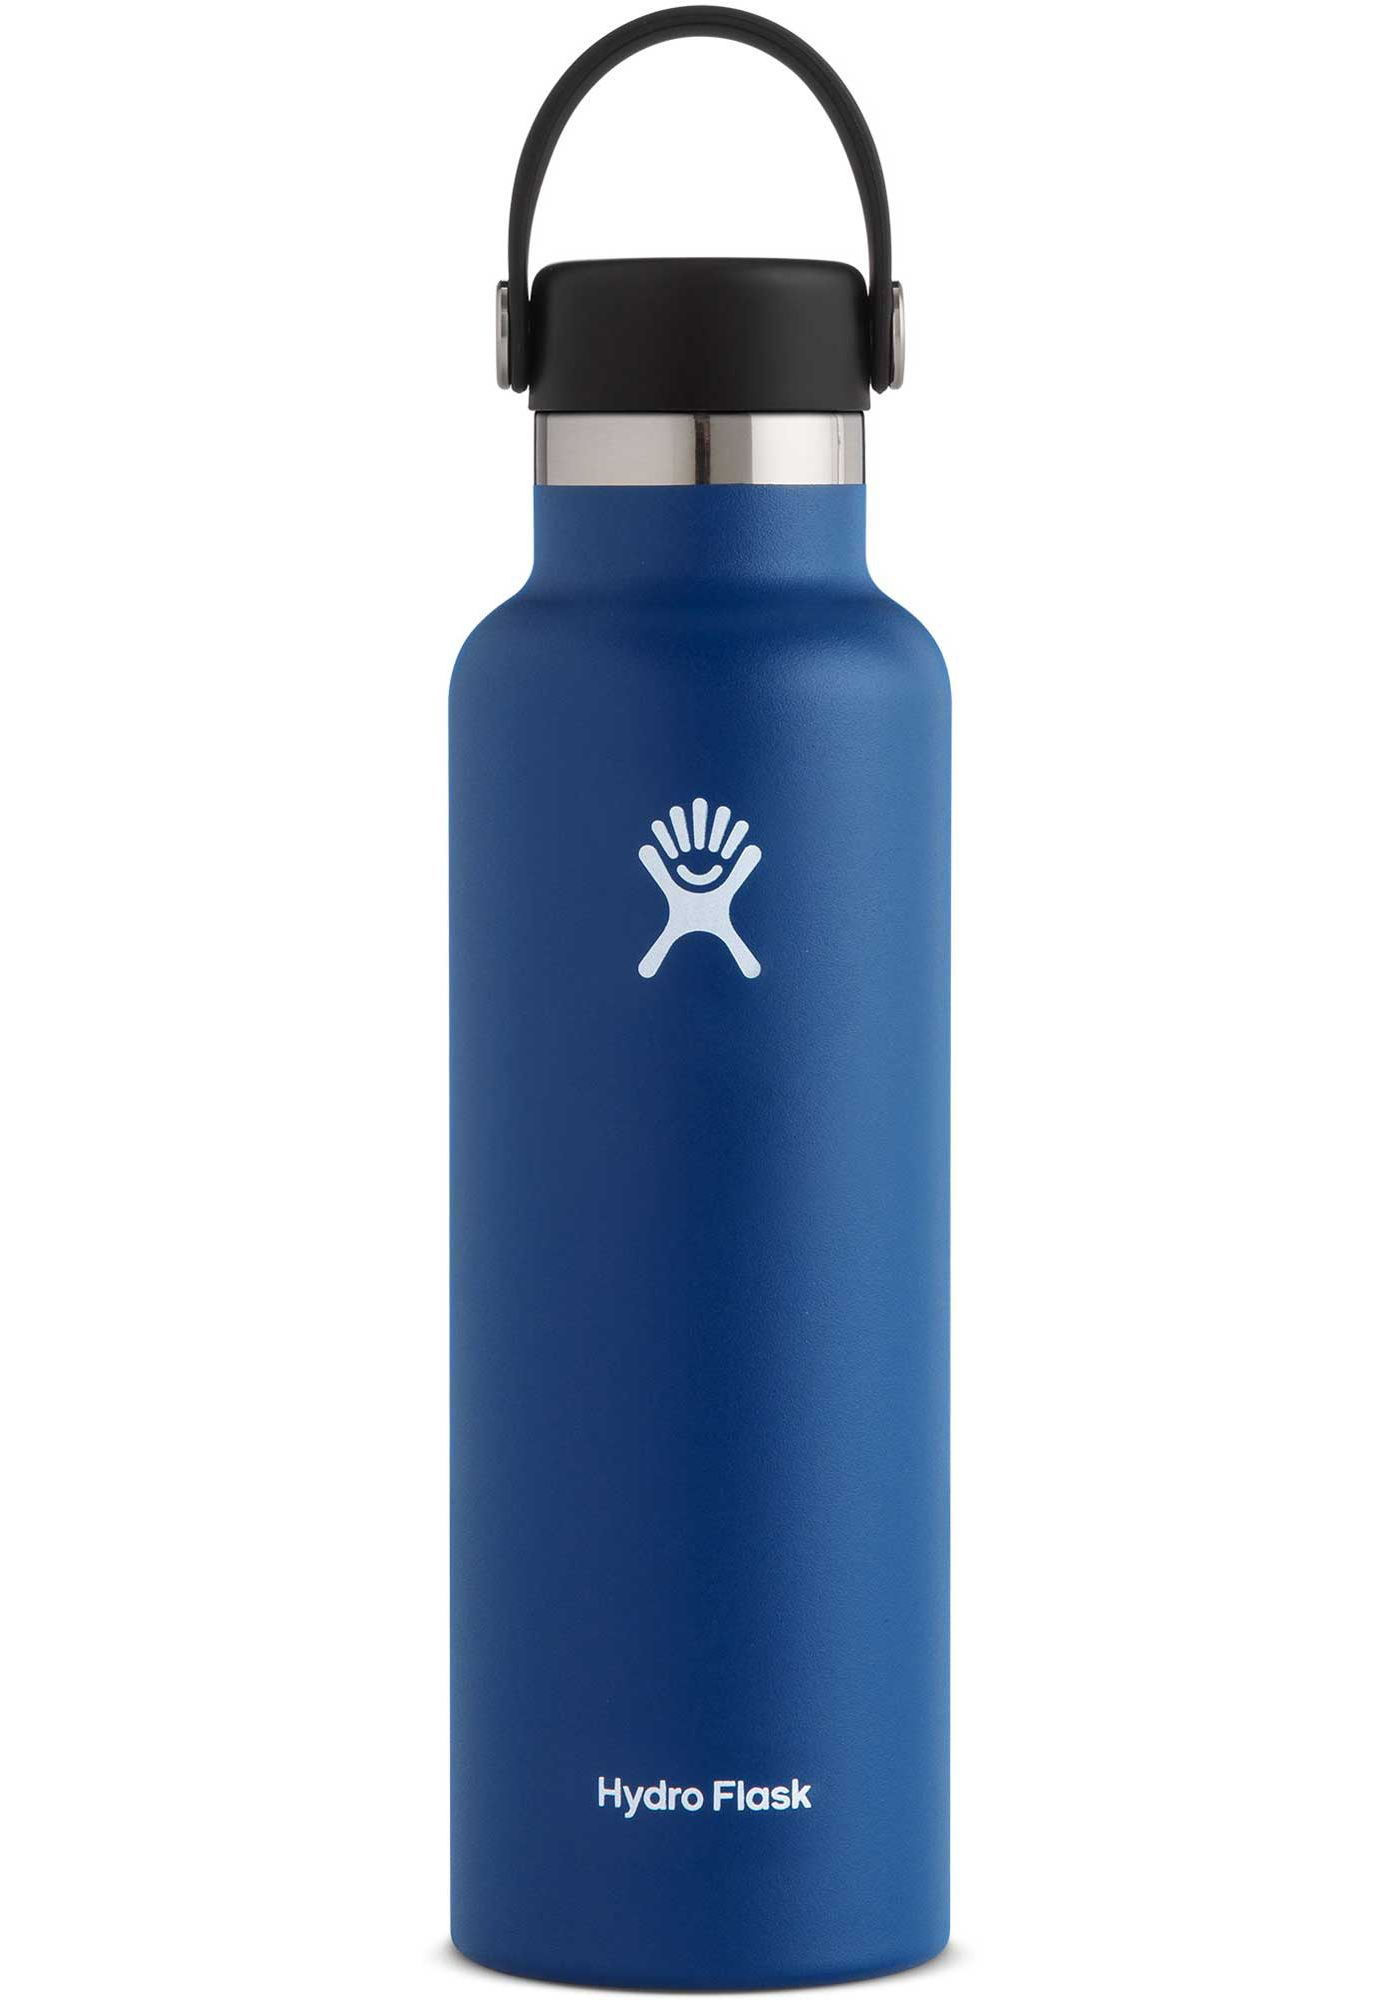 Hydro Flask Standard Mouth 21 oz. Bottle with Flex Cap